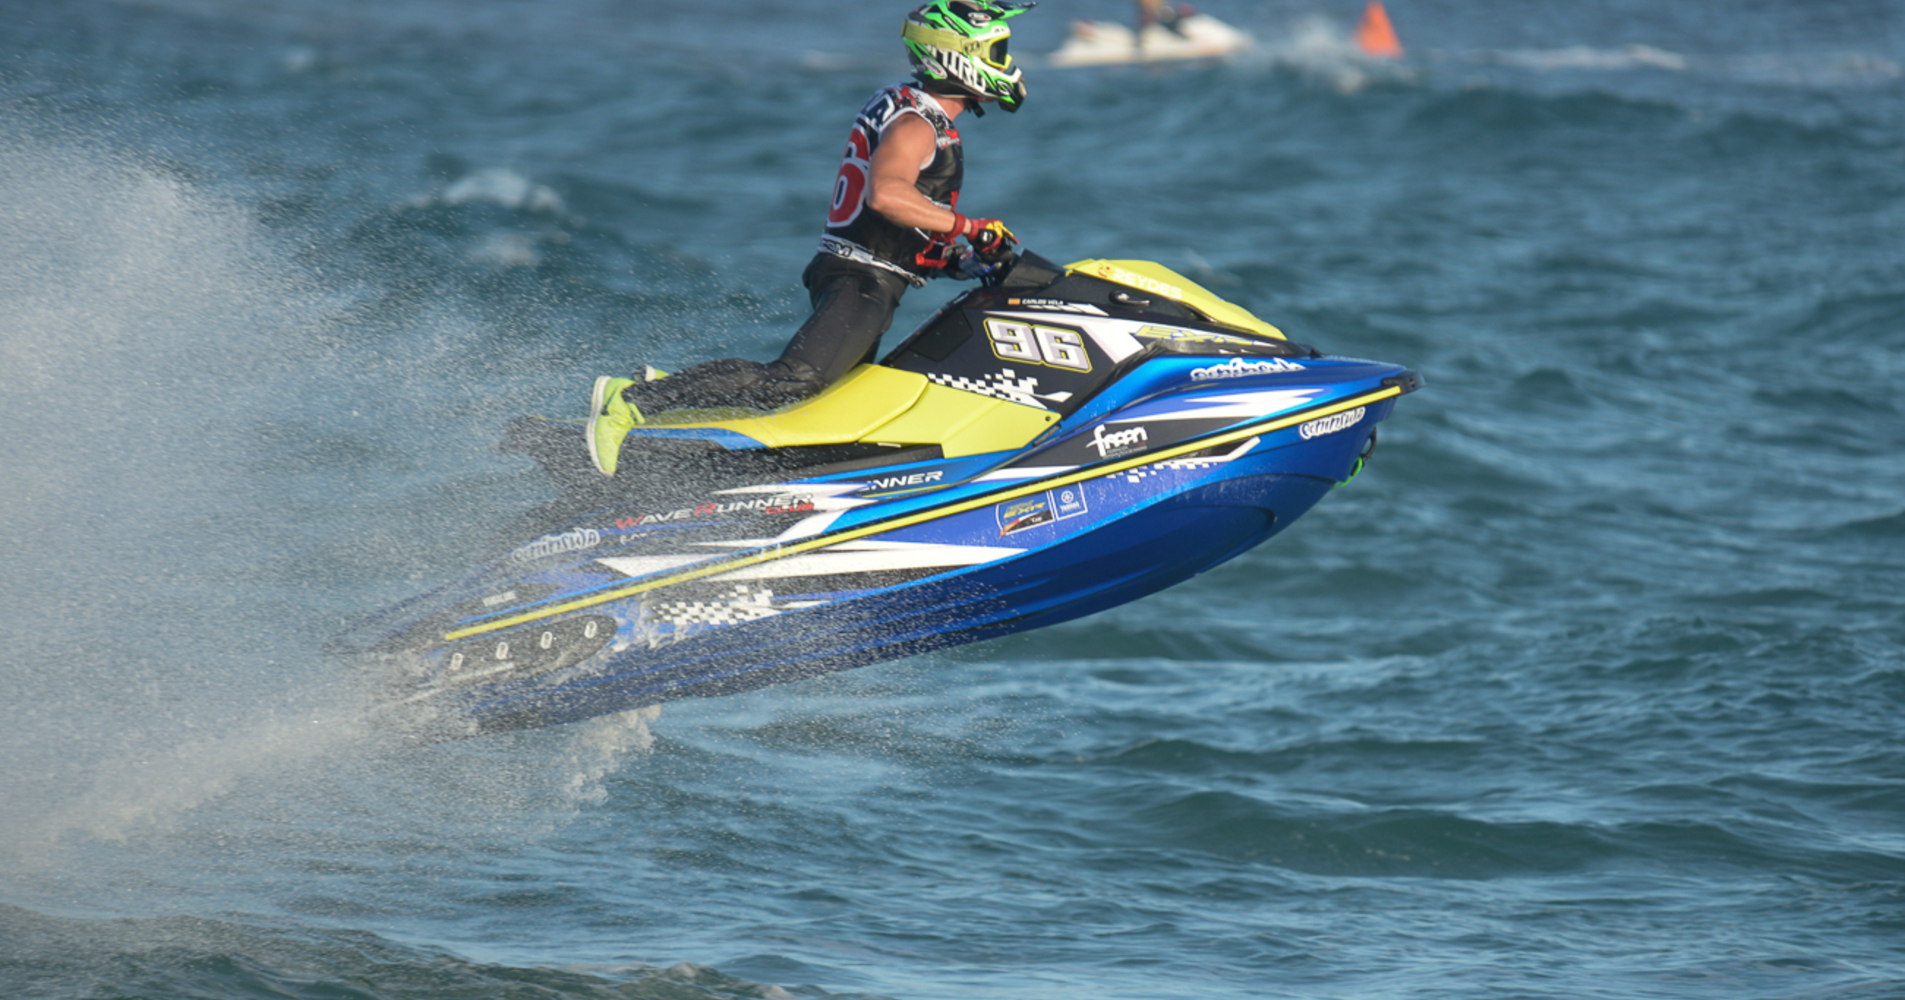 Carlos Vela (SP) won the Yamaha EXR CUP and the Sprint SE class